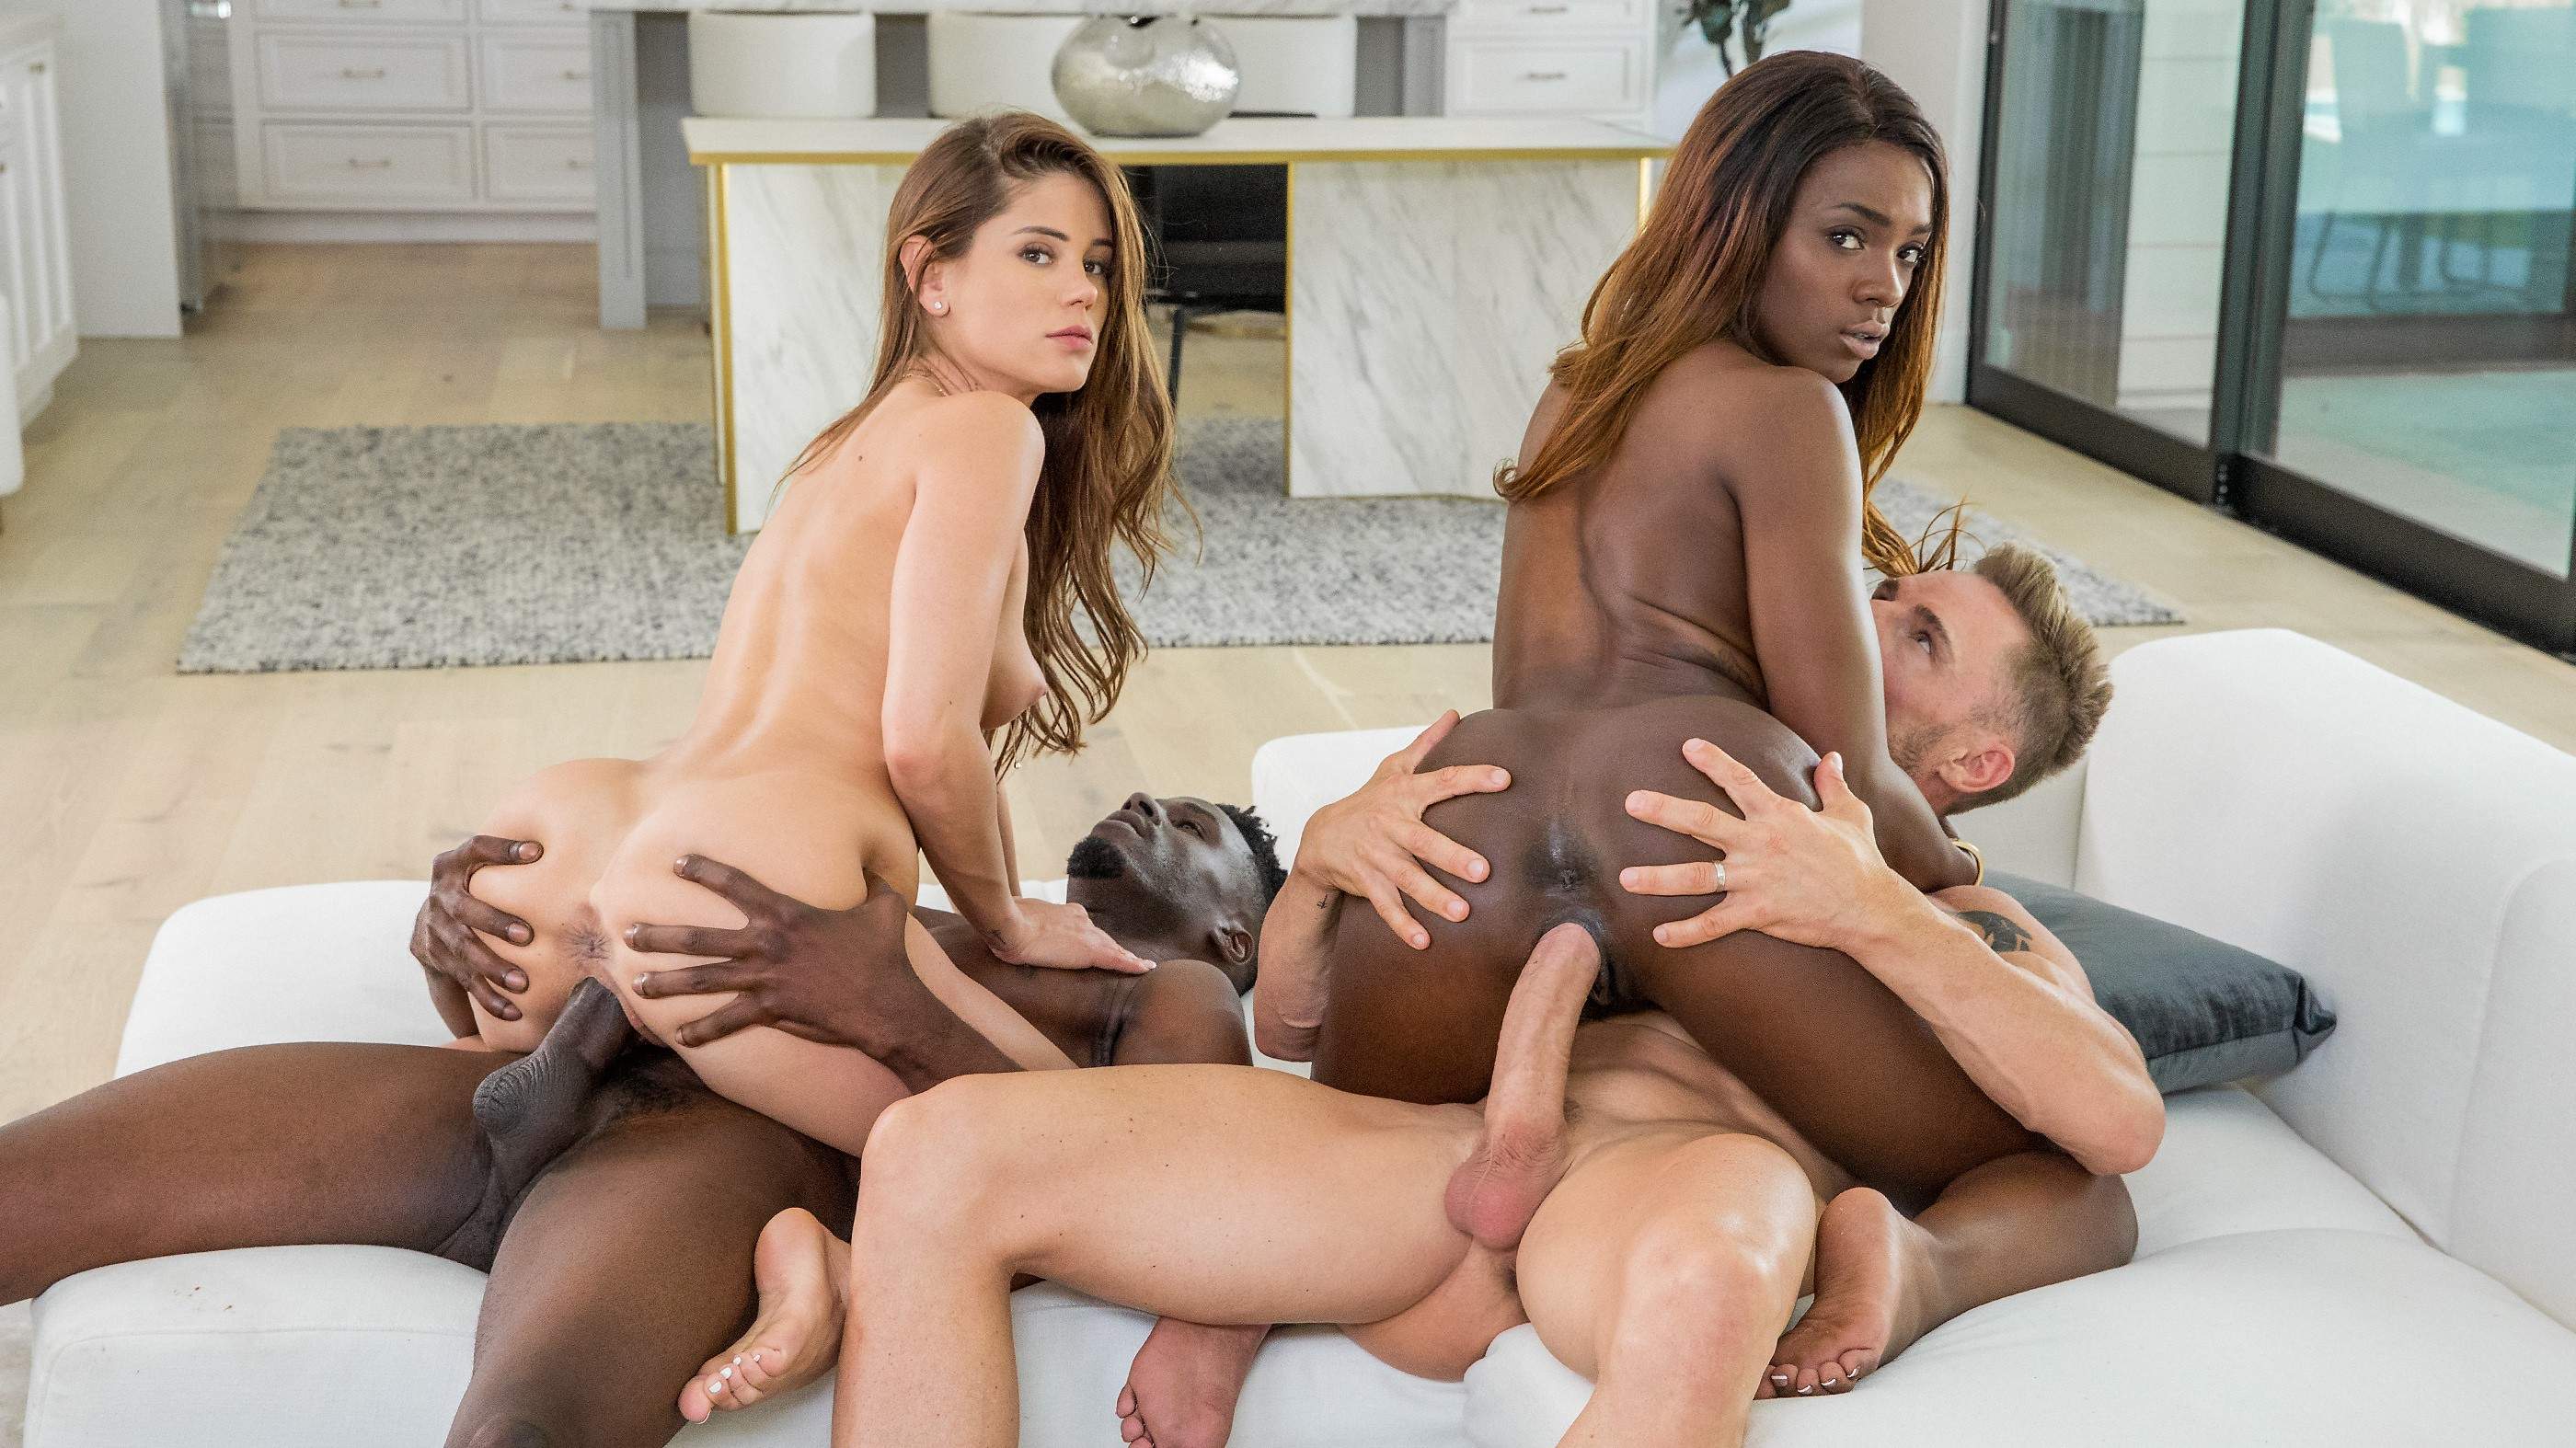 Caprice and Ana Foxxx in A Long Time Coming